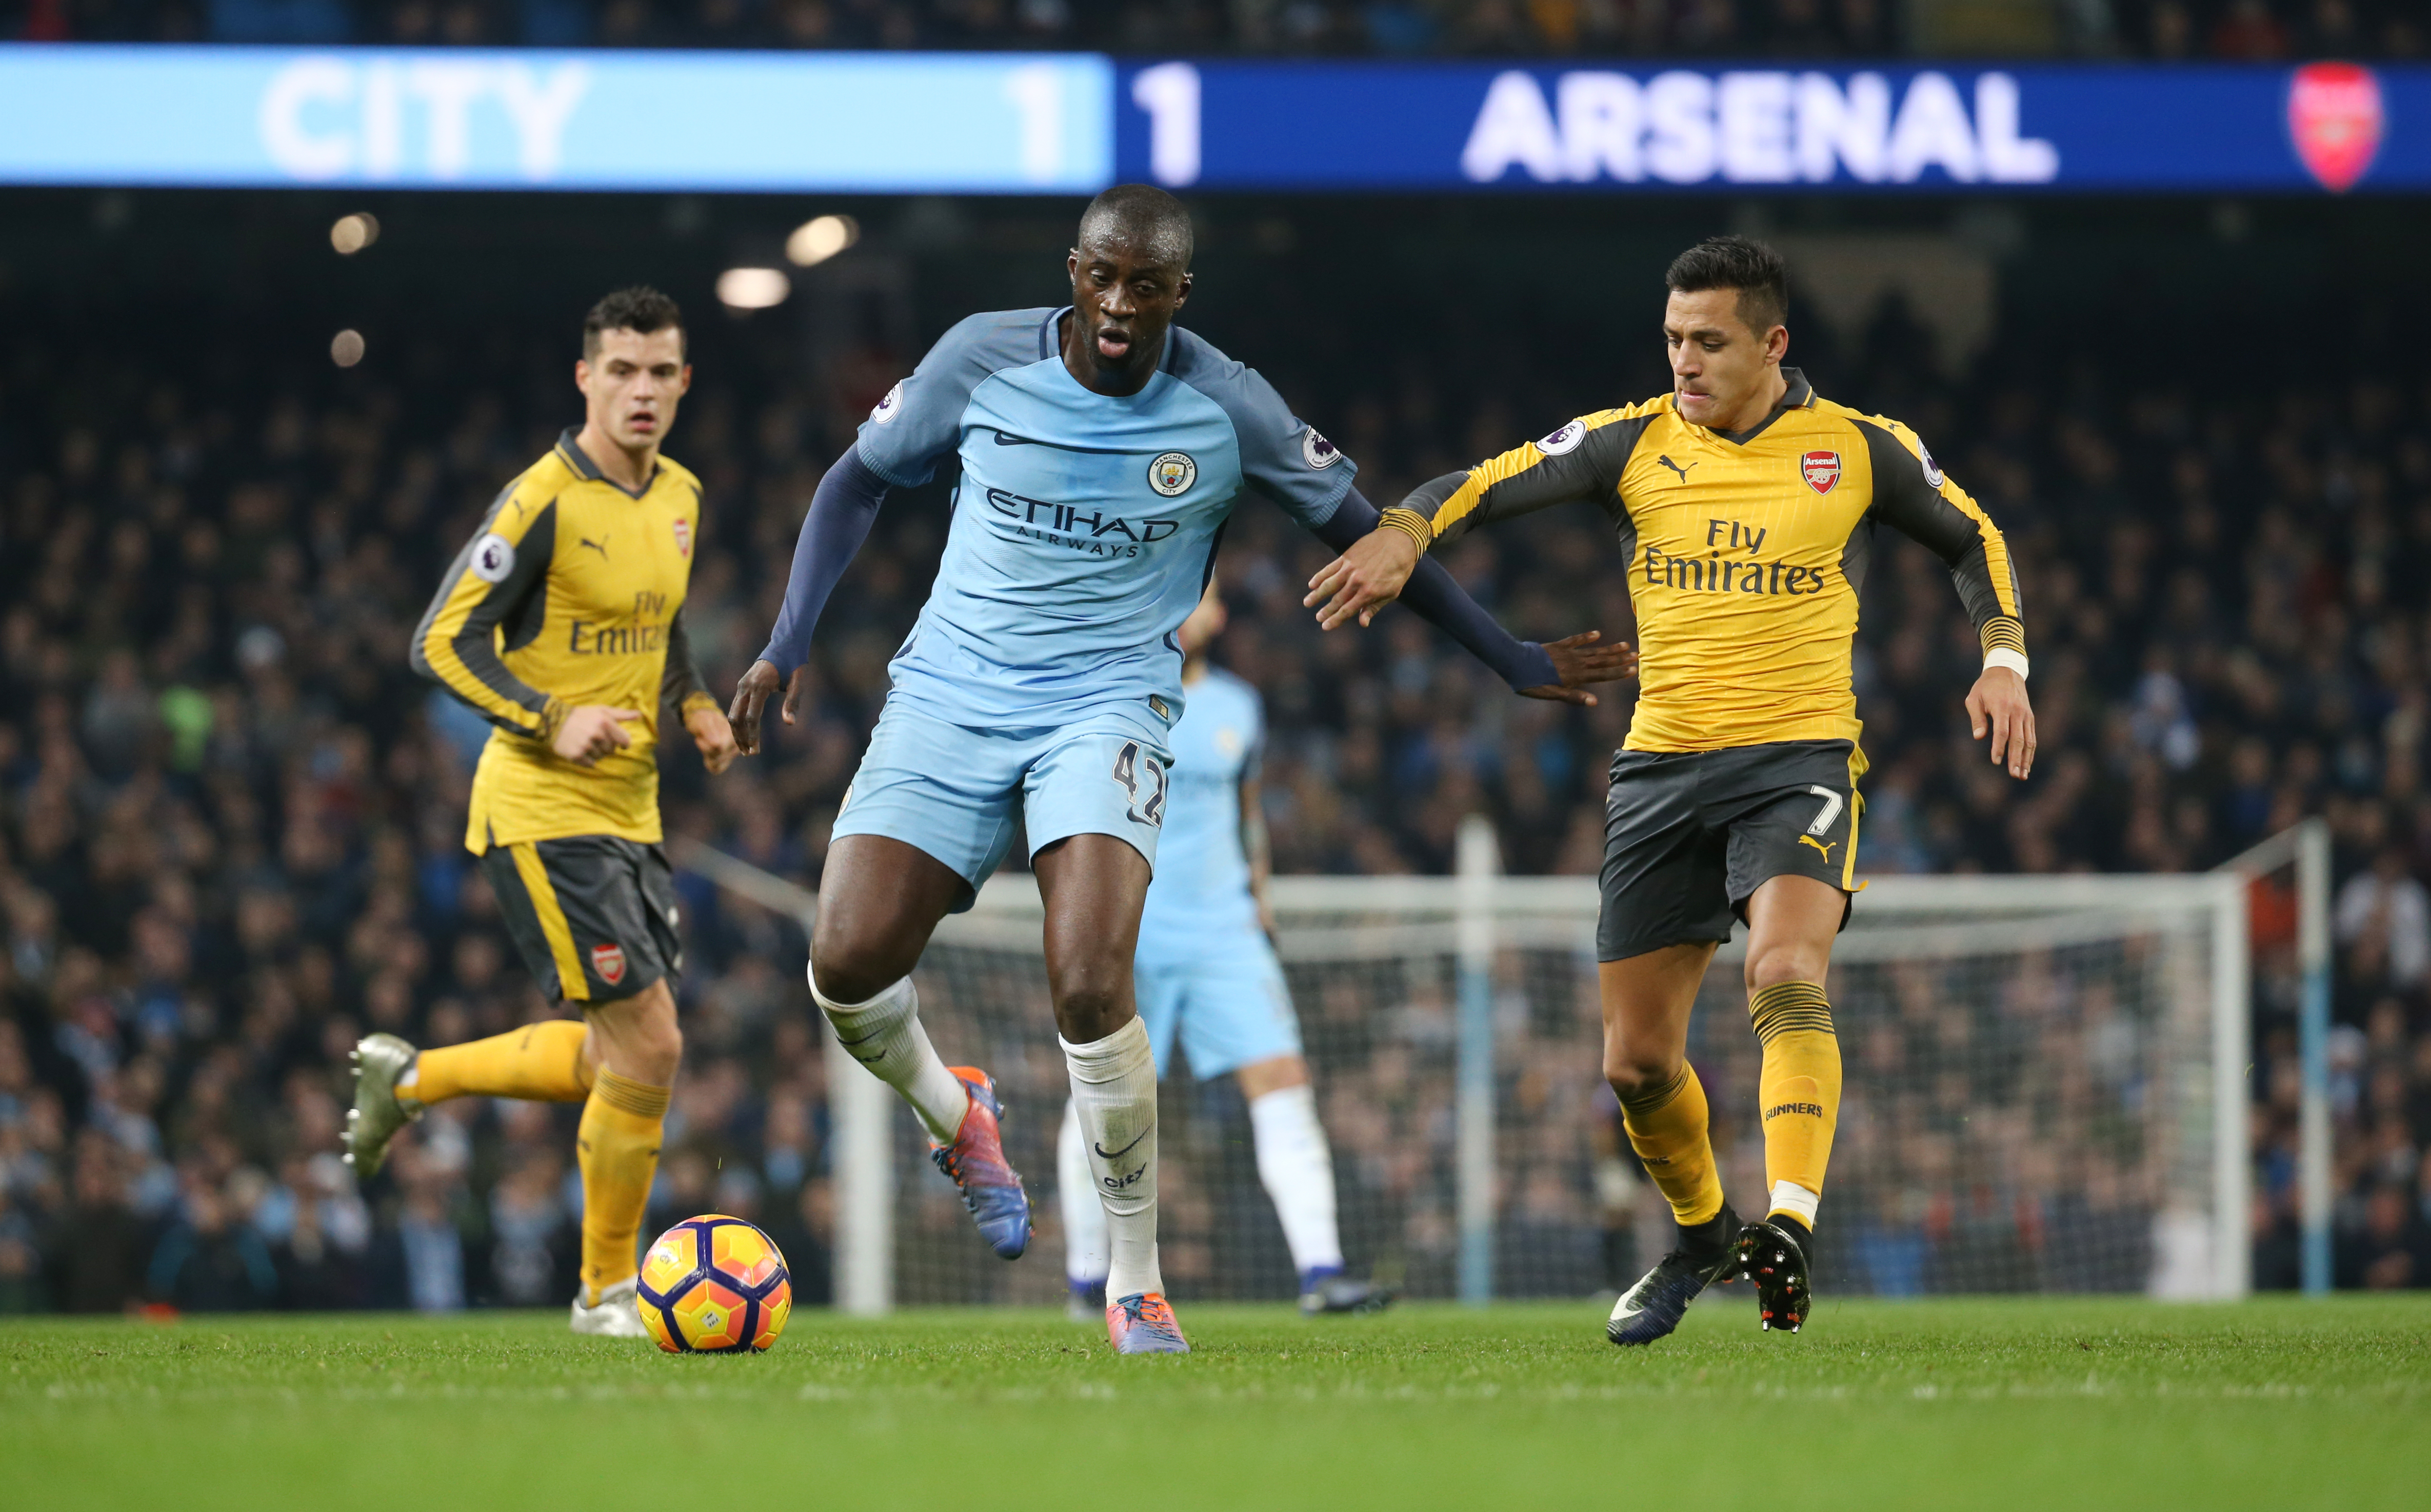 Manchester City's Yaya Toure and Arsenal's Alexis Sanchez in action